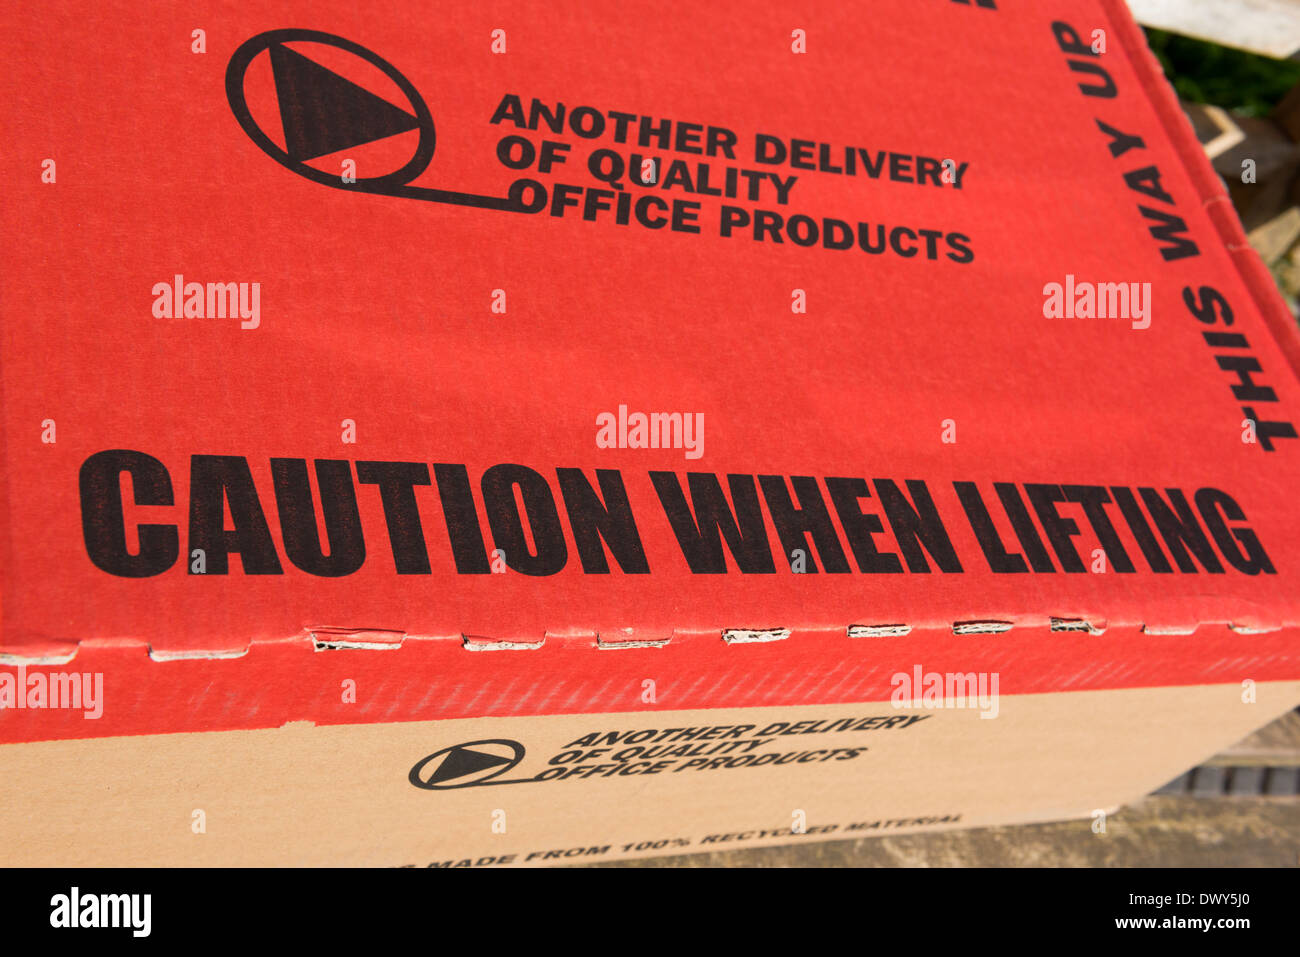 A cardboard delivery box with health and warning and safety information. - Stock Image